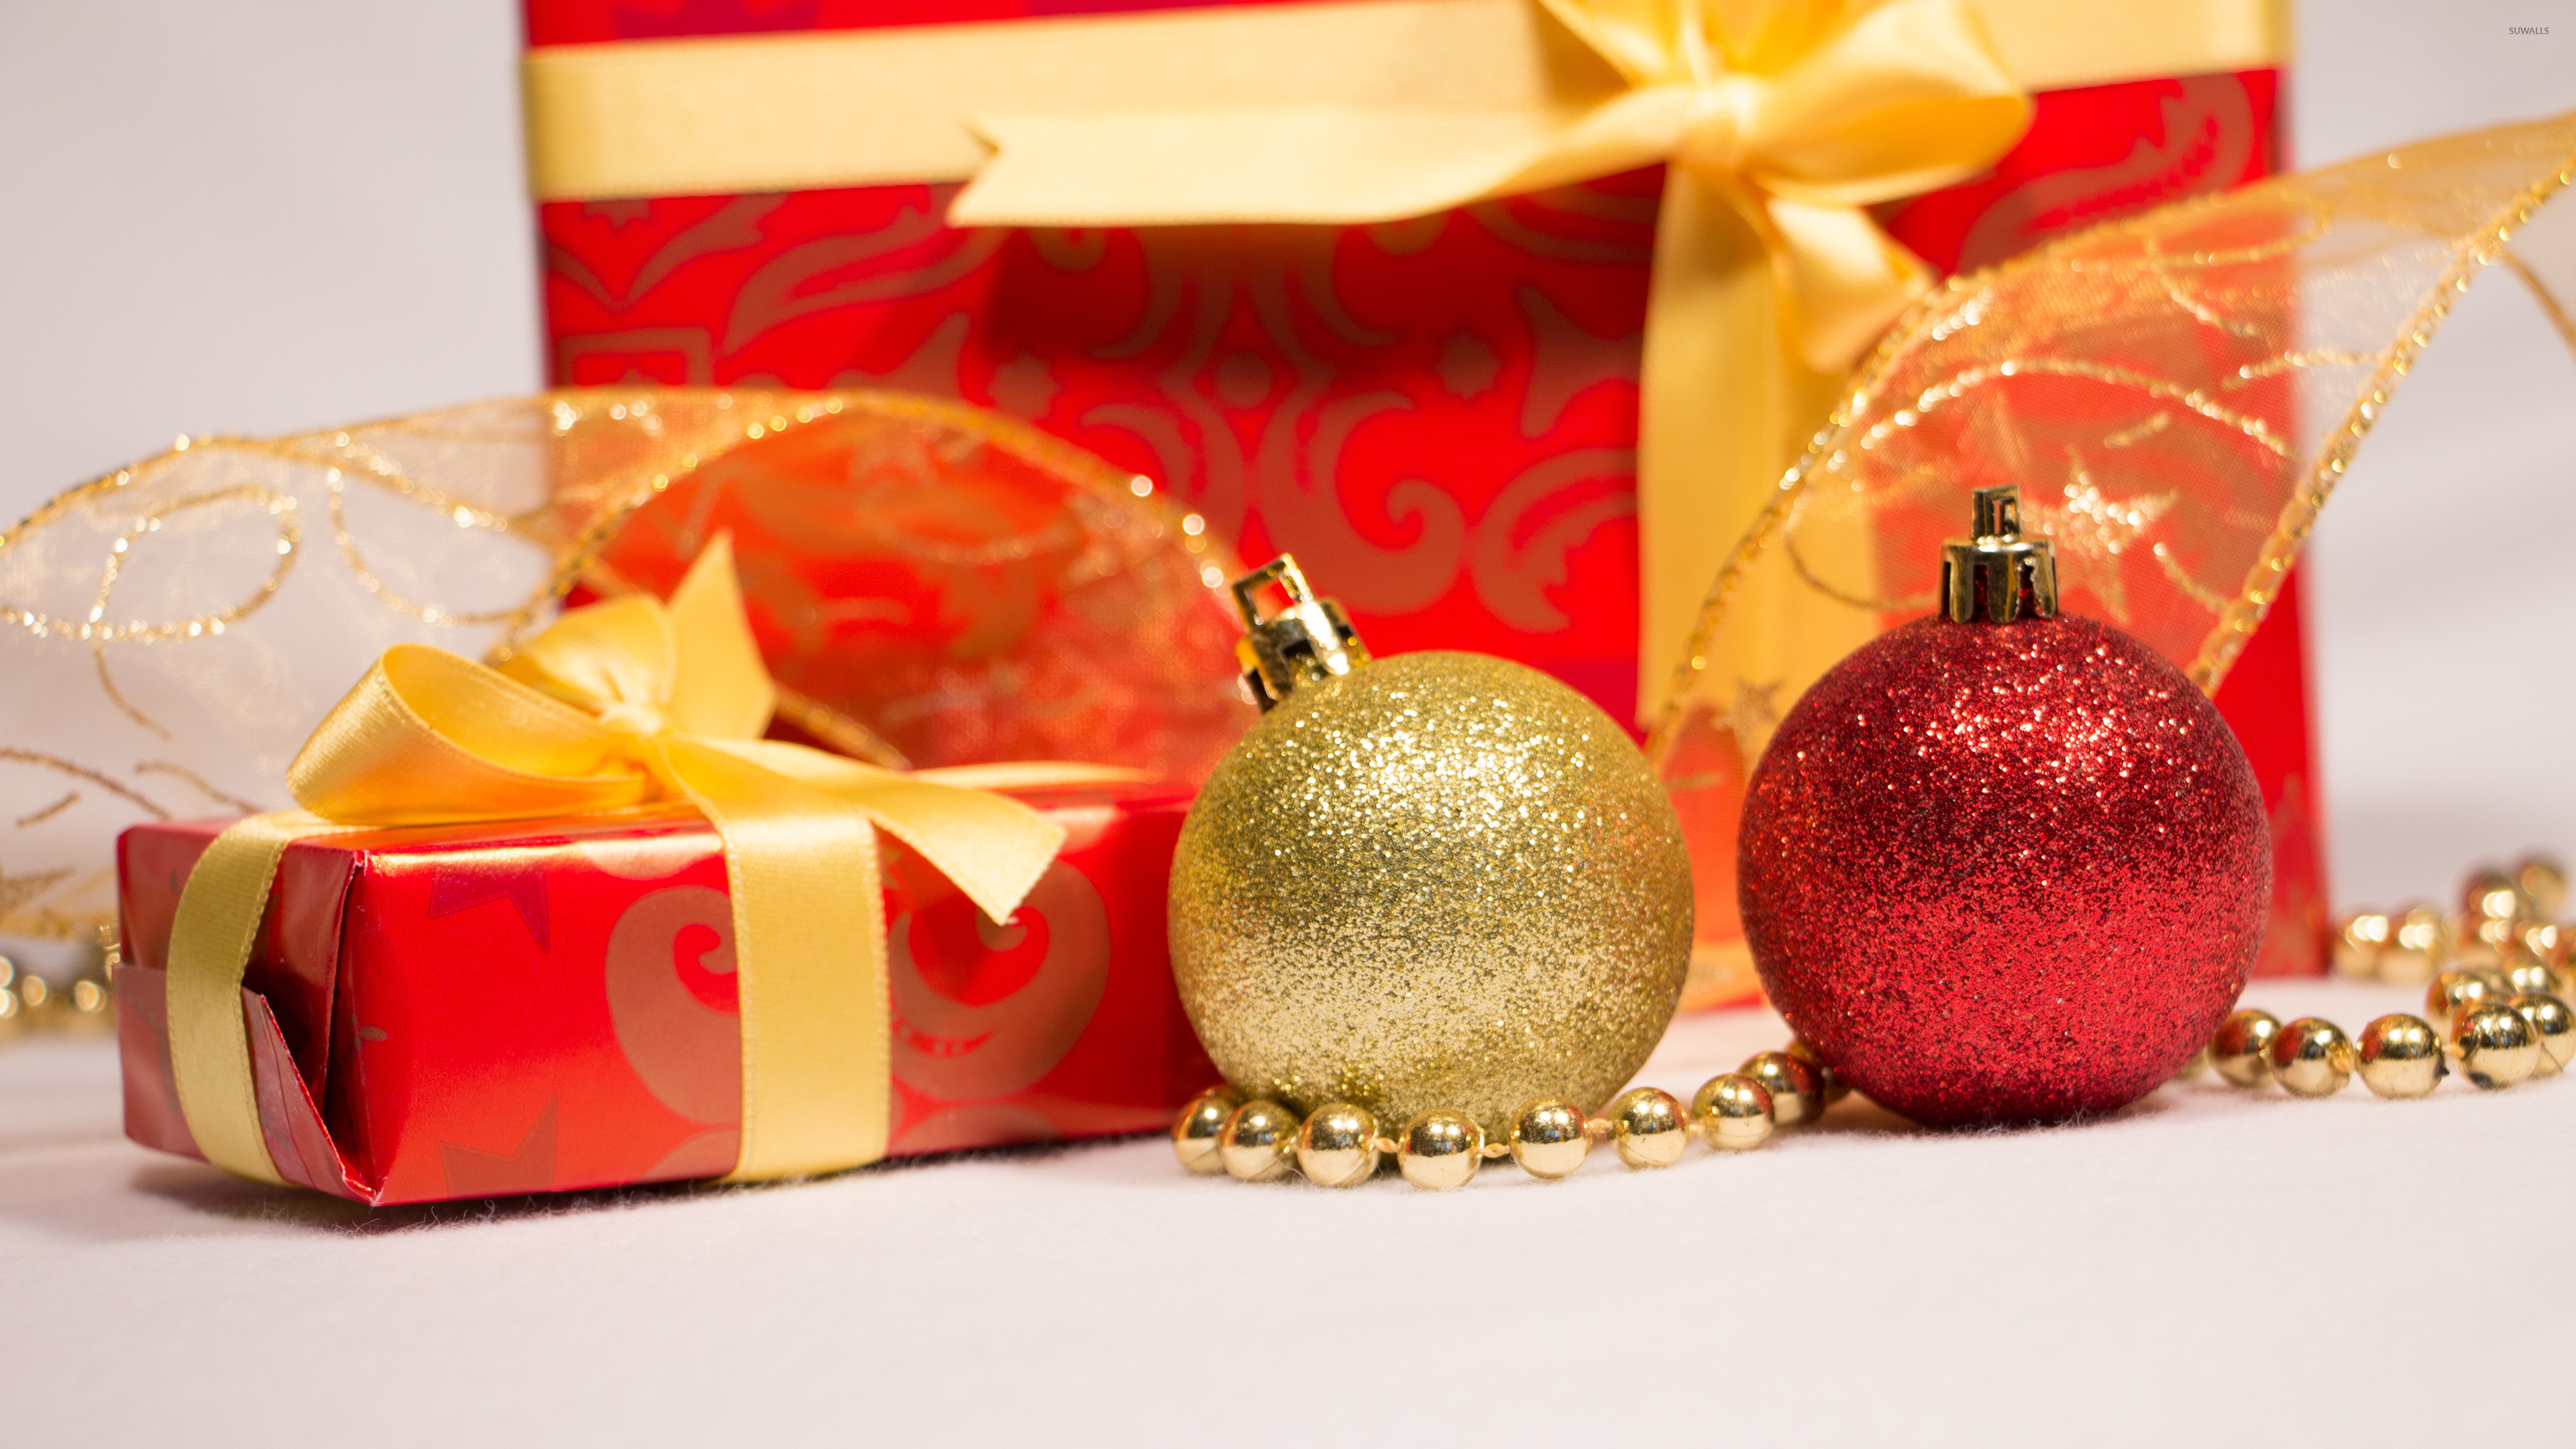 Res: 3840x2160, Christmas presents and baubles wallpaper